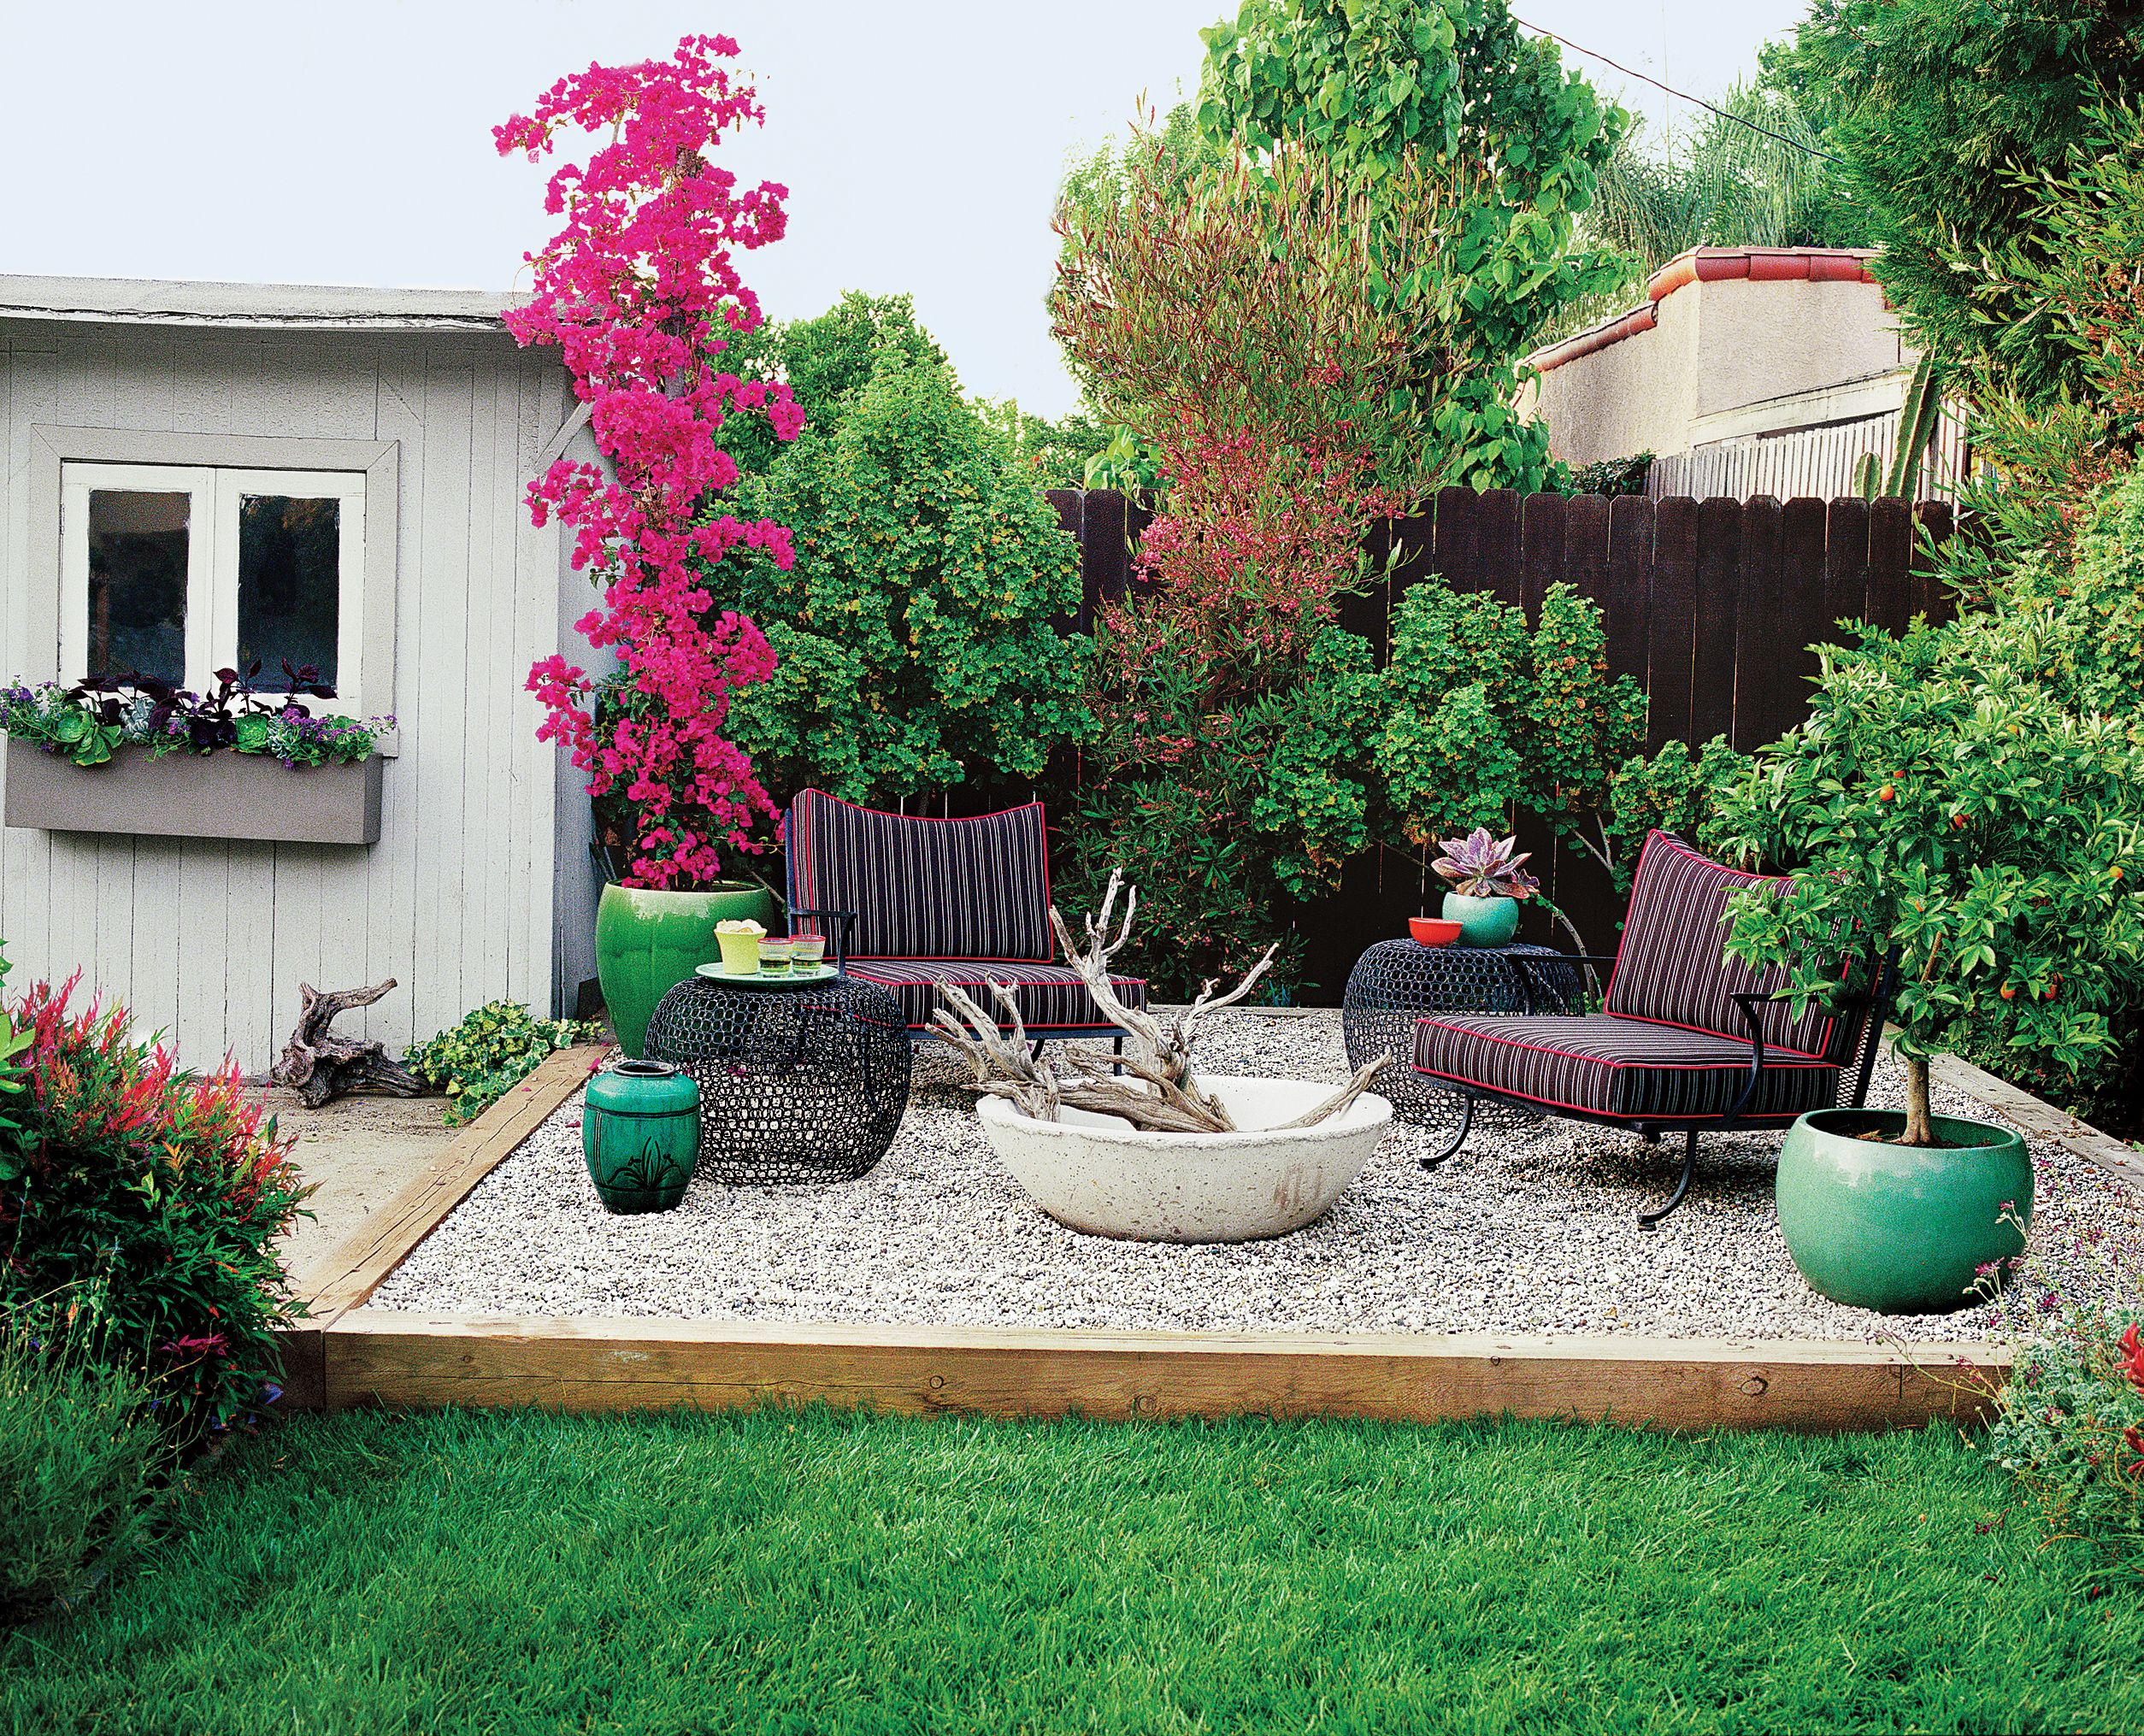 The Experts At This Old House Give Pointers On Picking The Right Surface To Suit Your Patio S Function Its Sur Backyard Makeover Raised Patio Gravel Patio Diy Backyard oasis ideas this old house